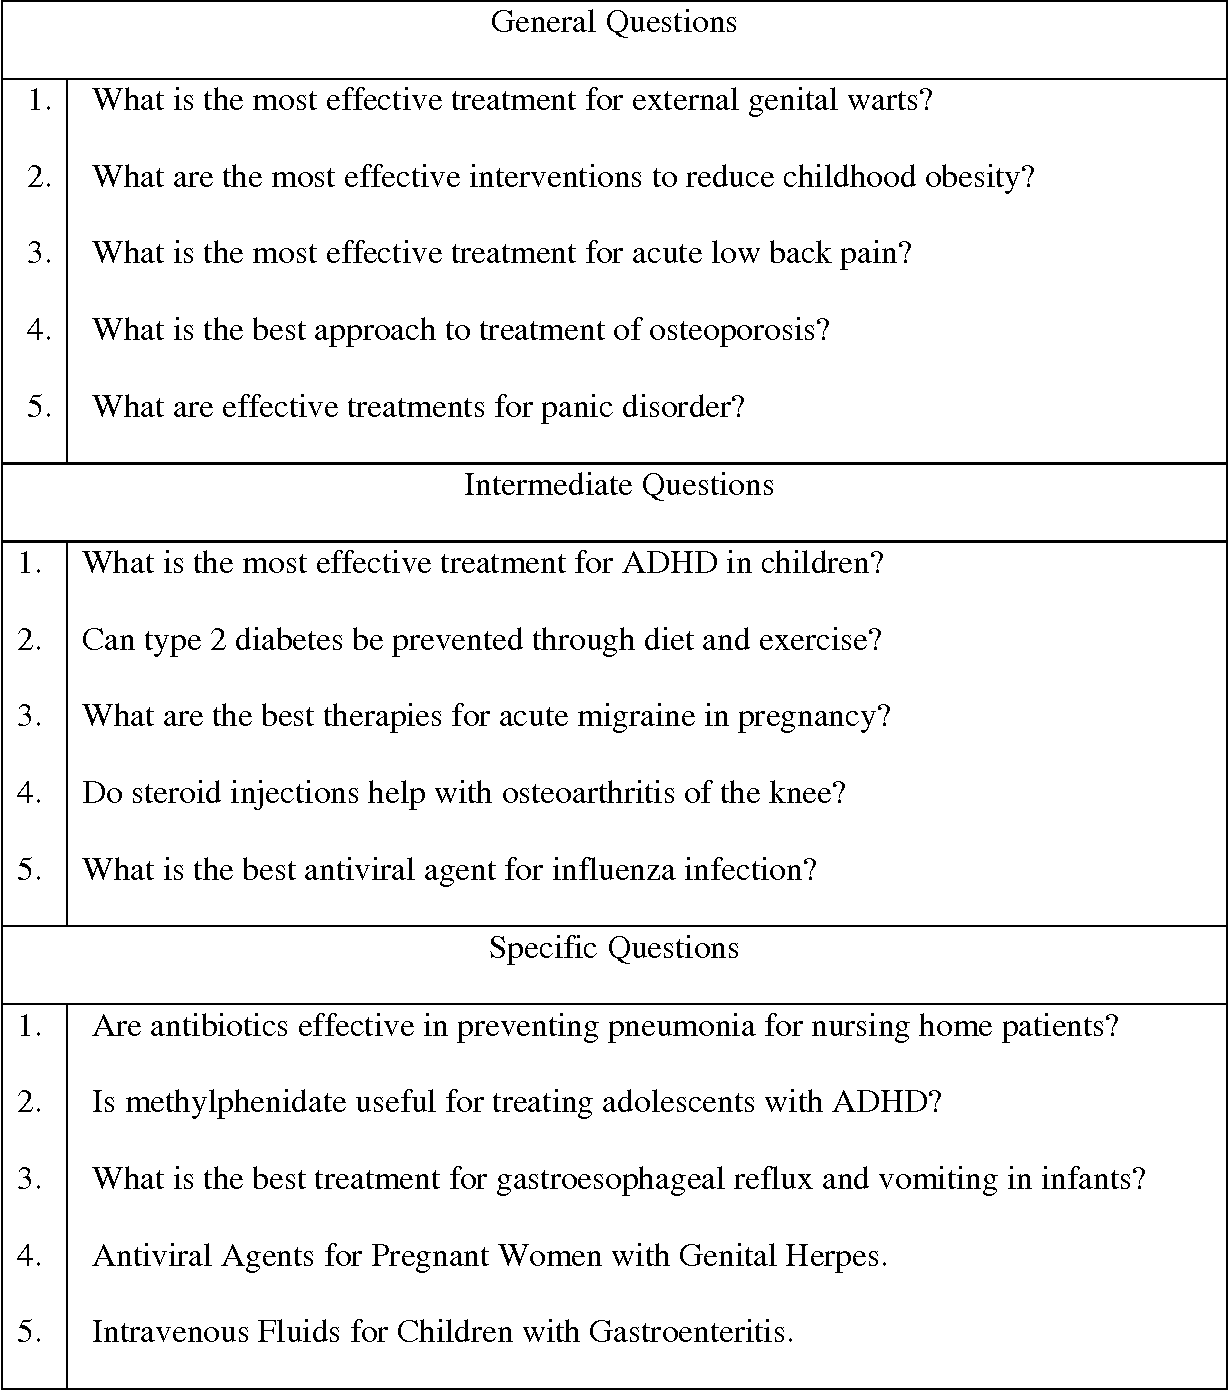 PDF] Research Paper: Knowledge-based Methods to Help Clinicians Find